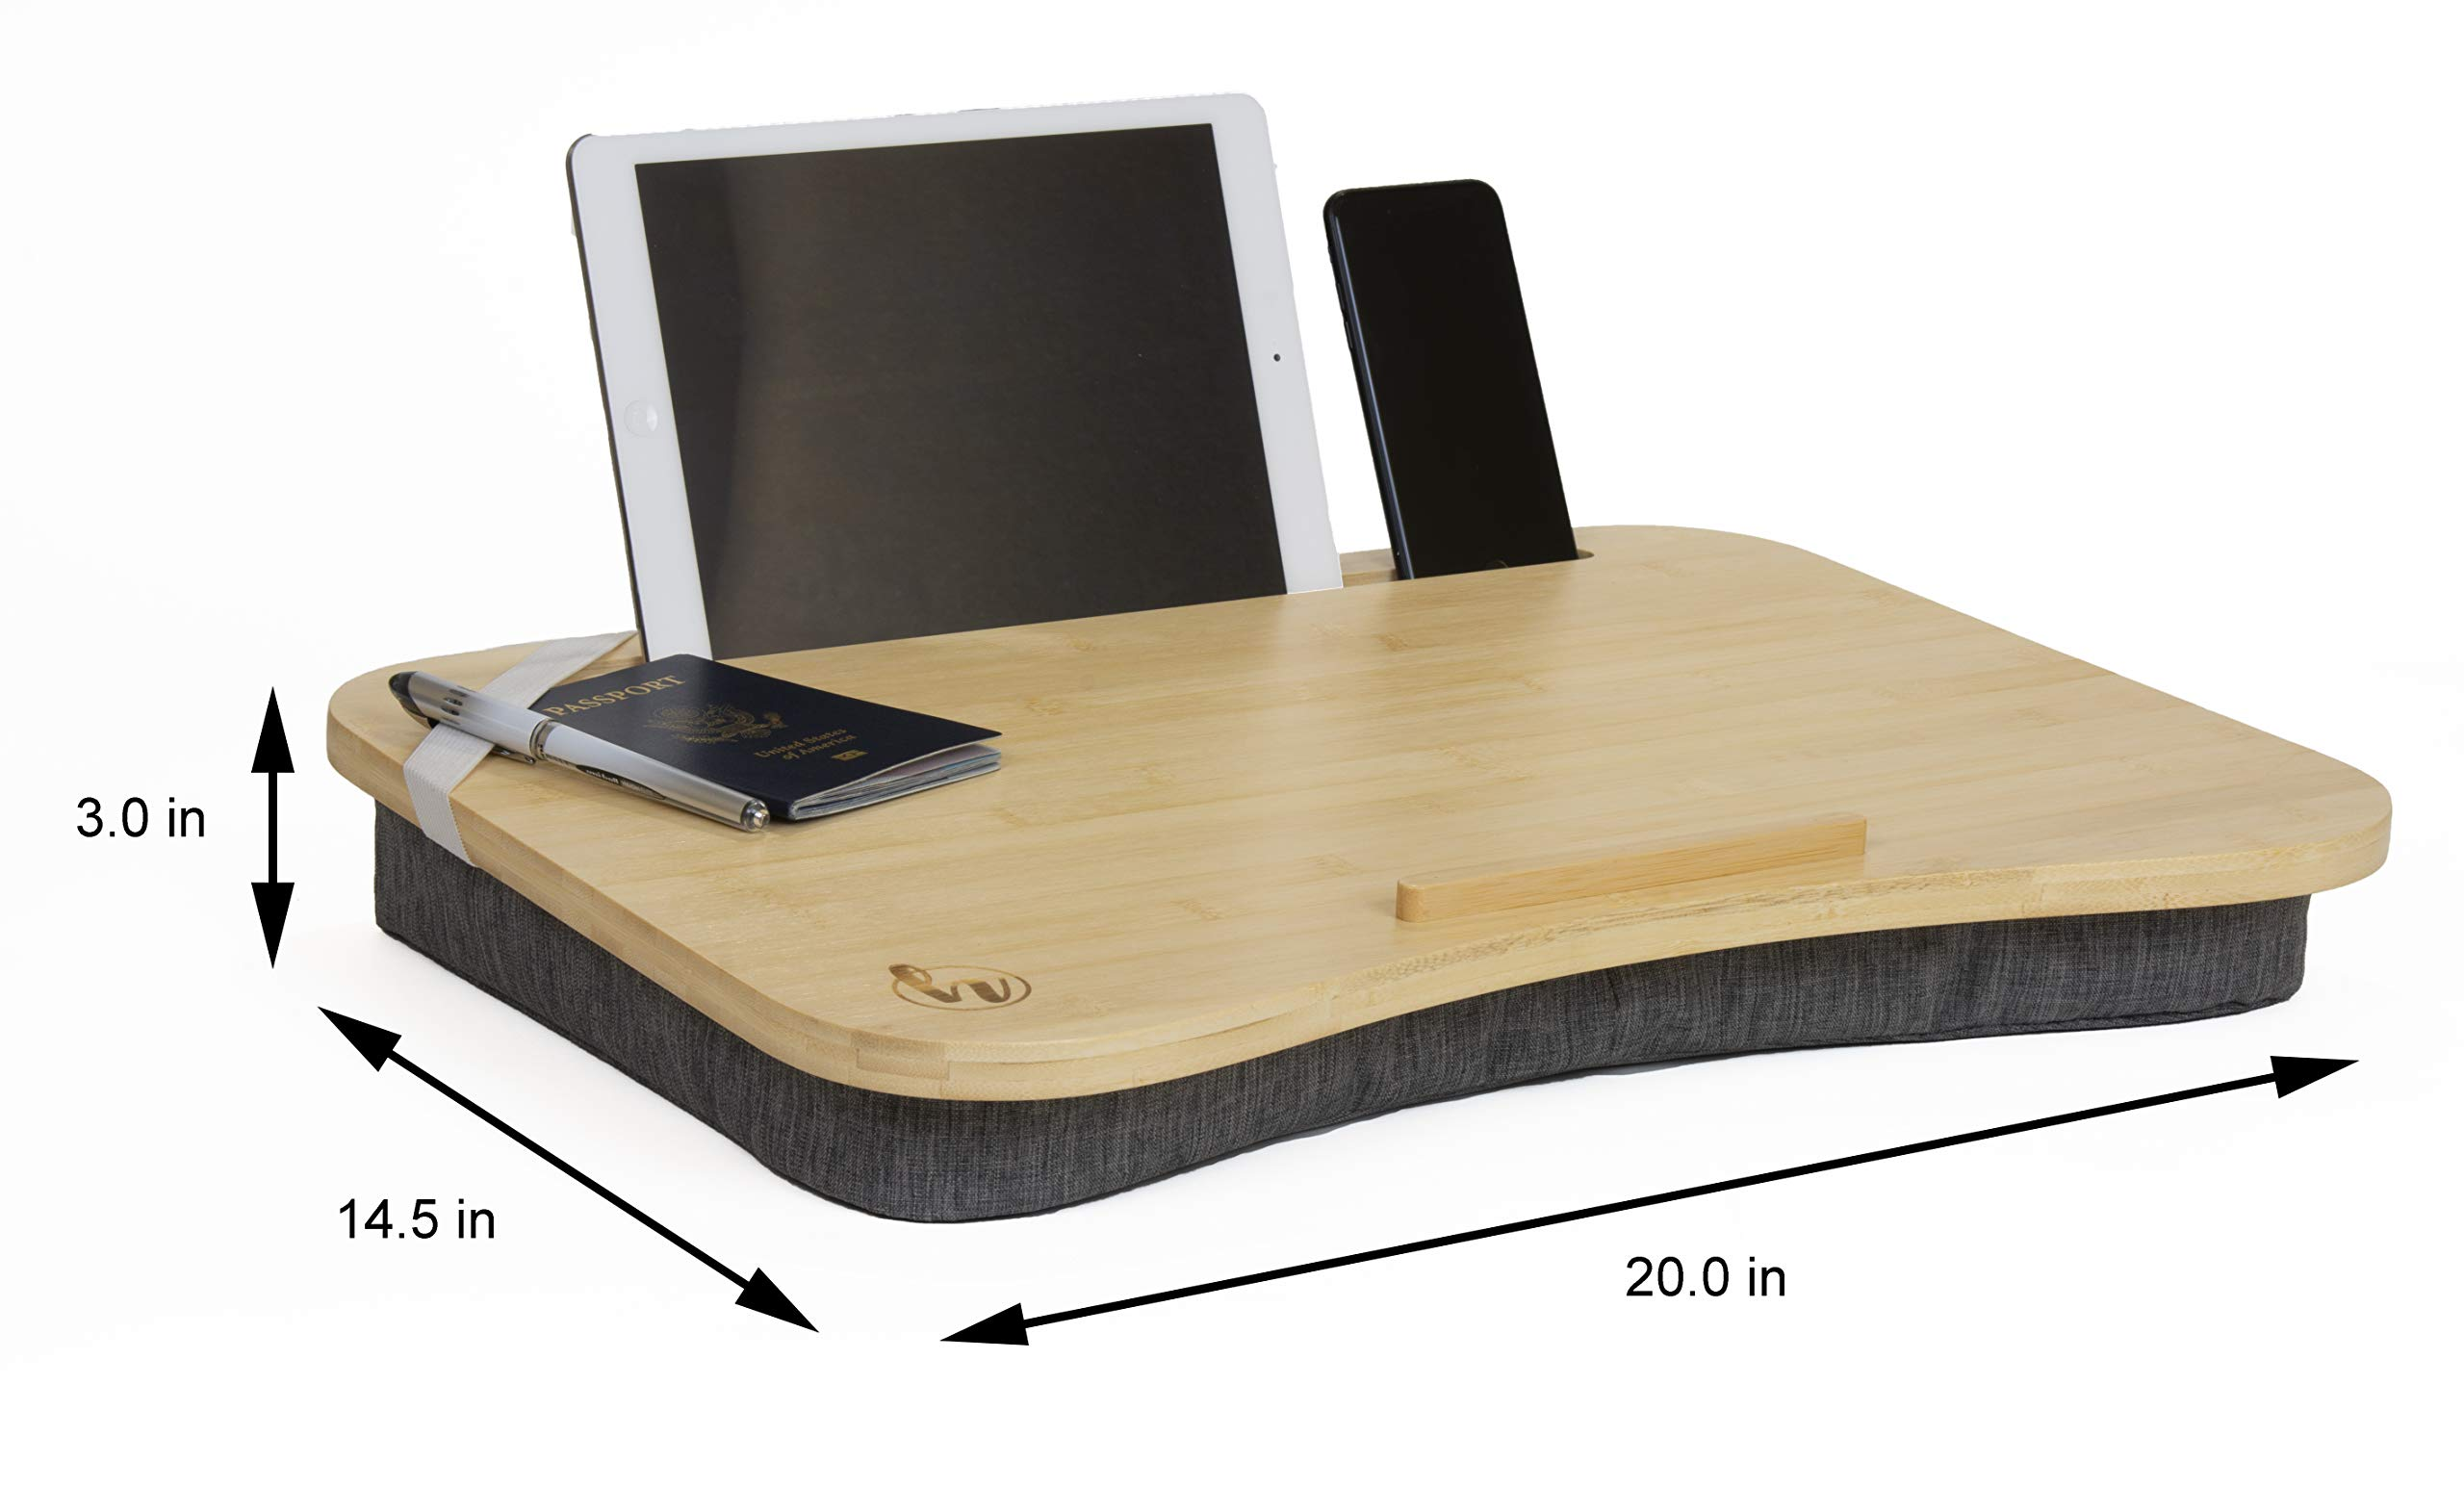 Lap Desk by Hultzzzy - Large 100% Natural Bamboo Surface - Fits up to 17 Inch Laptops - 15'' Tablets - Pen & Phone Holder - Mouse Pad Accessible - Cushion Foundation by Hultzzzy (Image #6)